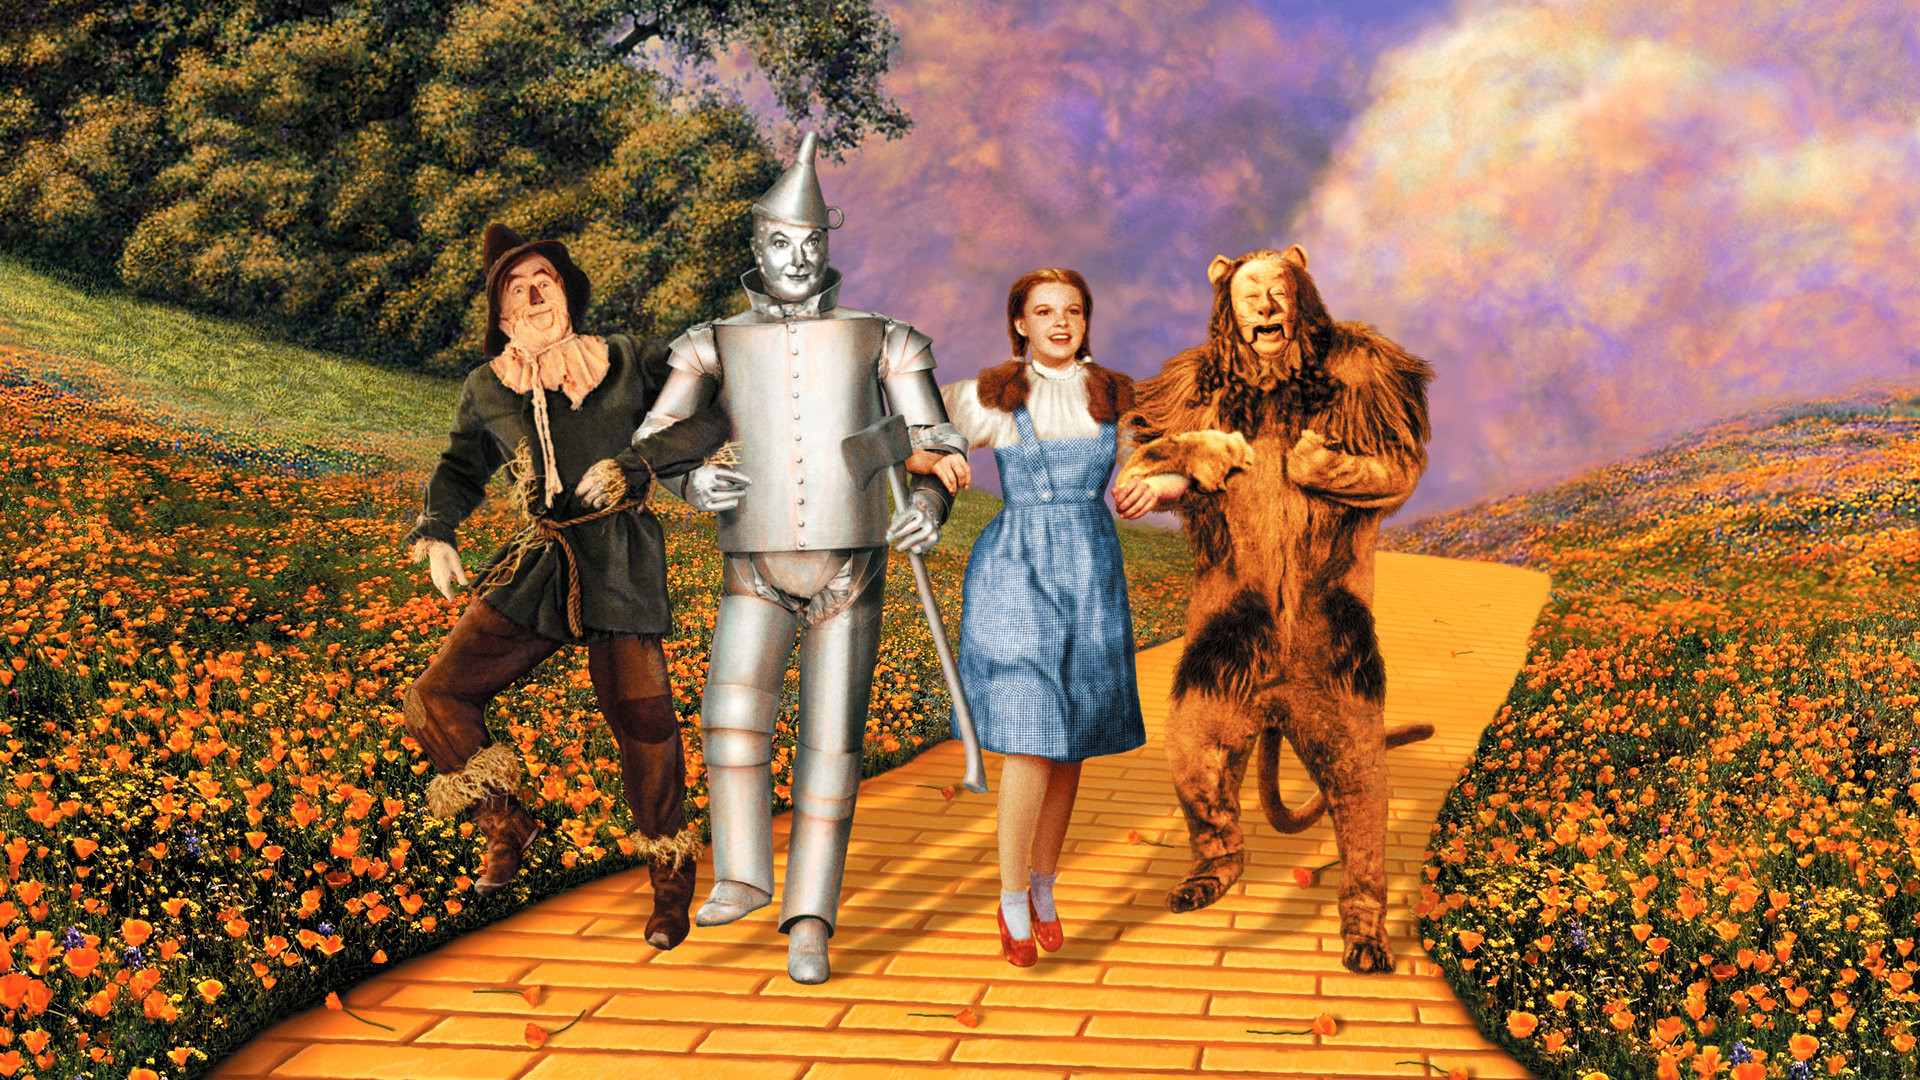 Gone With The Wind Is The Most Successful Movie Of All Time, But The Wizard Of Oz Is Most 'Influential'